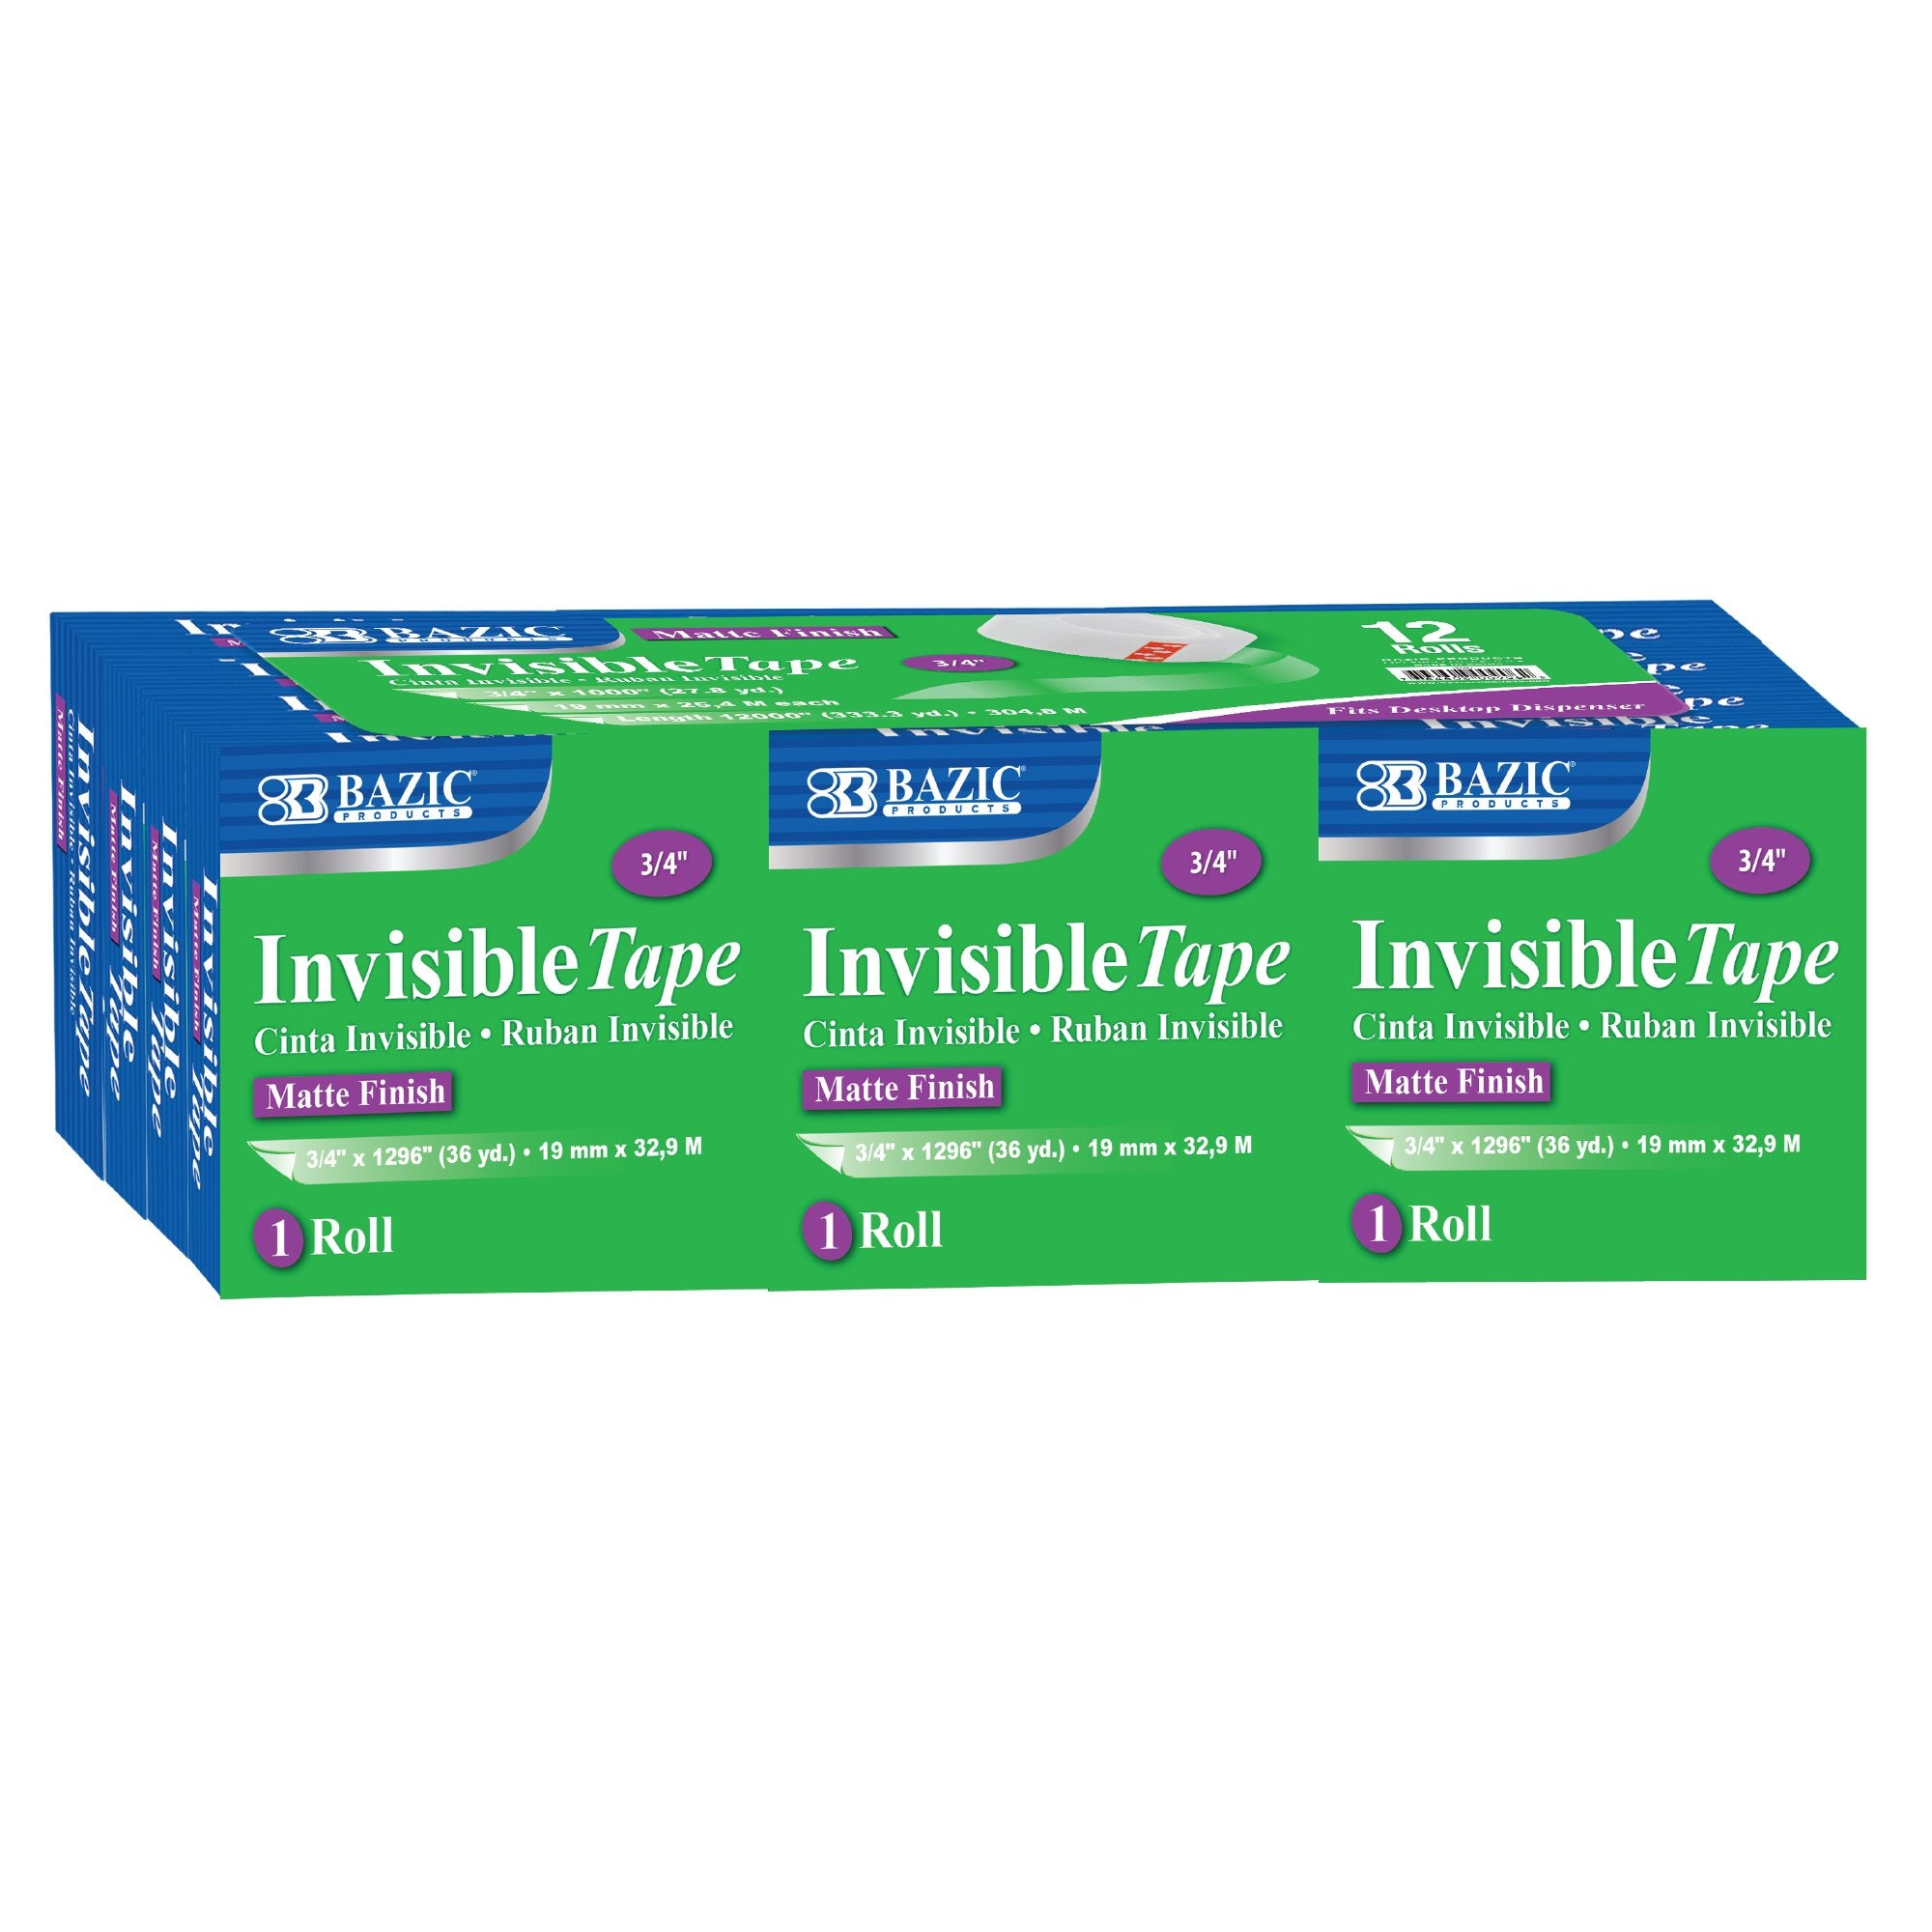 BAZIC 3/4 X 1296 Invisible Tape Refill ,144/ Rolls